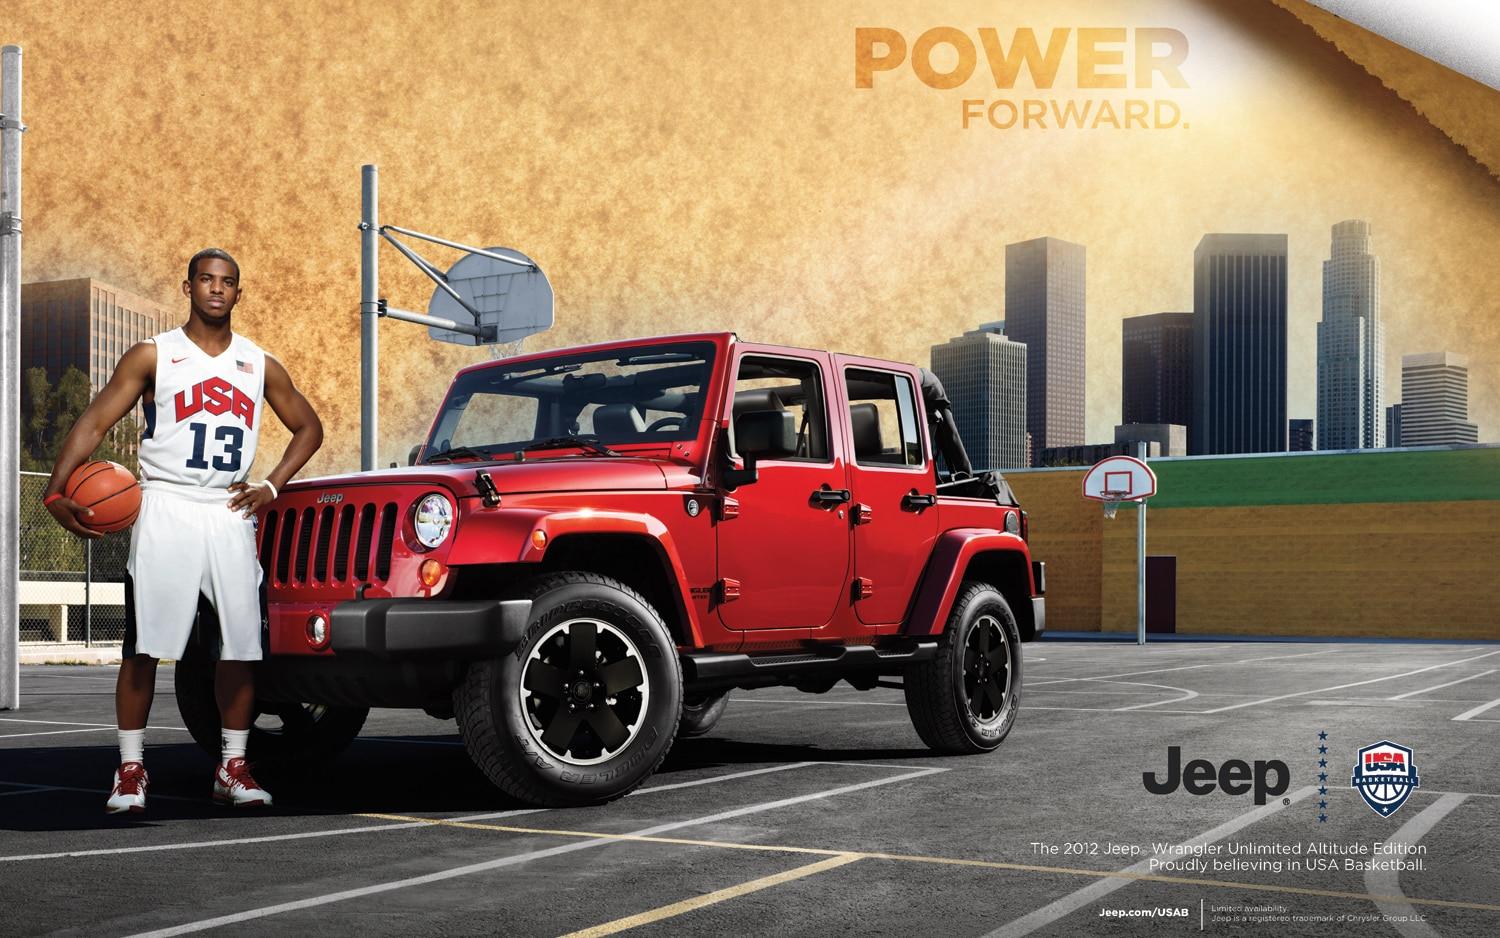 2012 Jeep Wrangler Unlimited Altitude Ad1